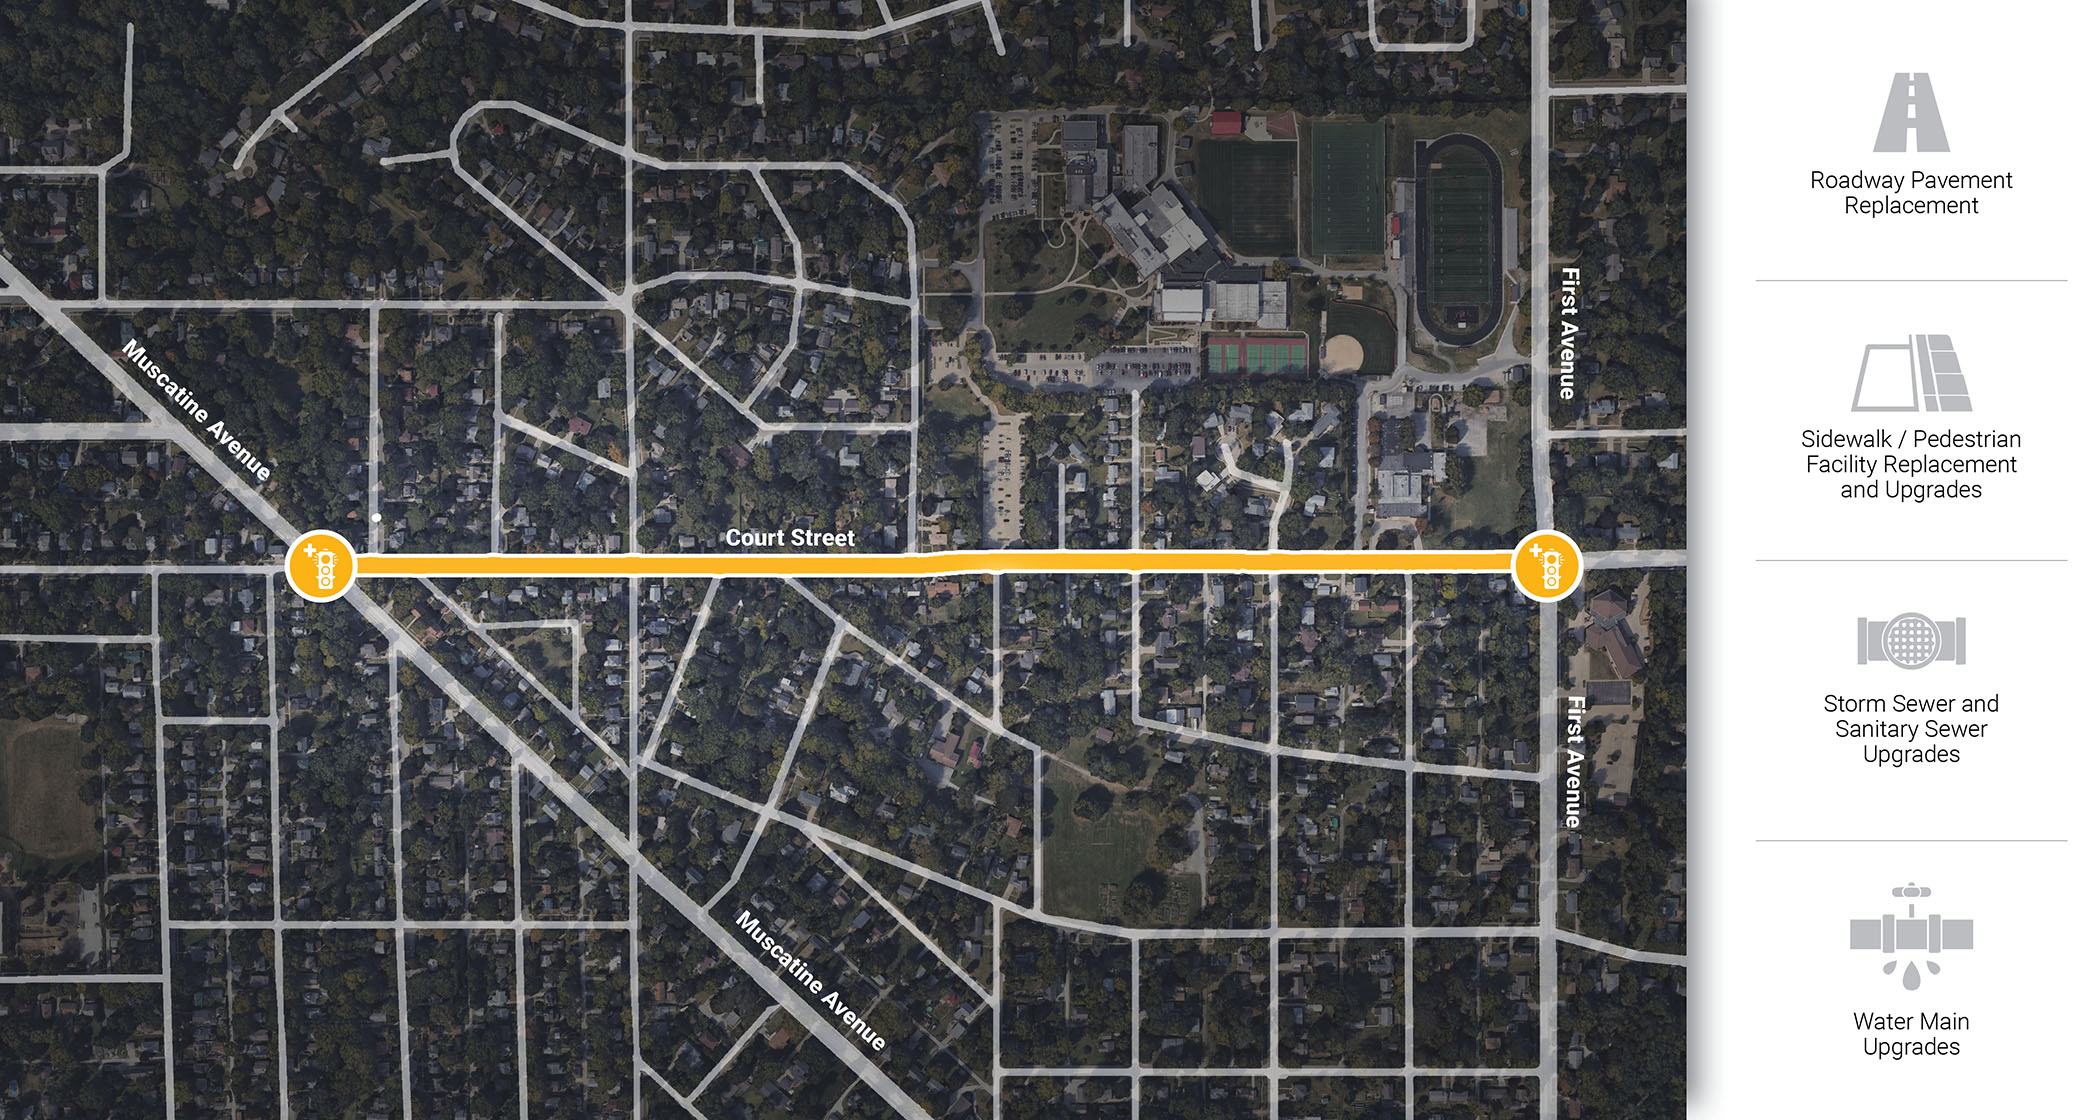 Court Street Reconstruction project map